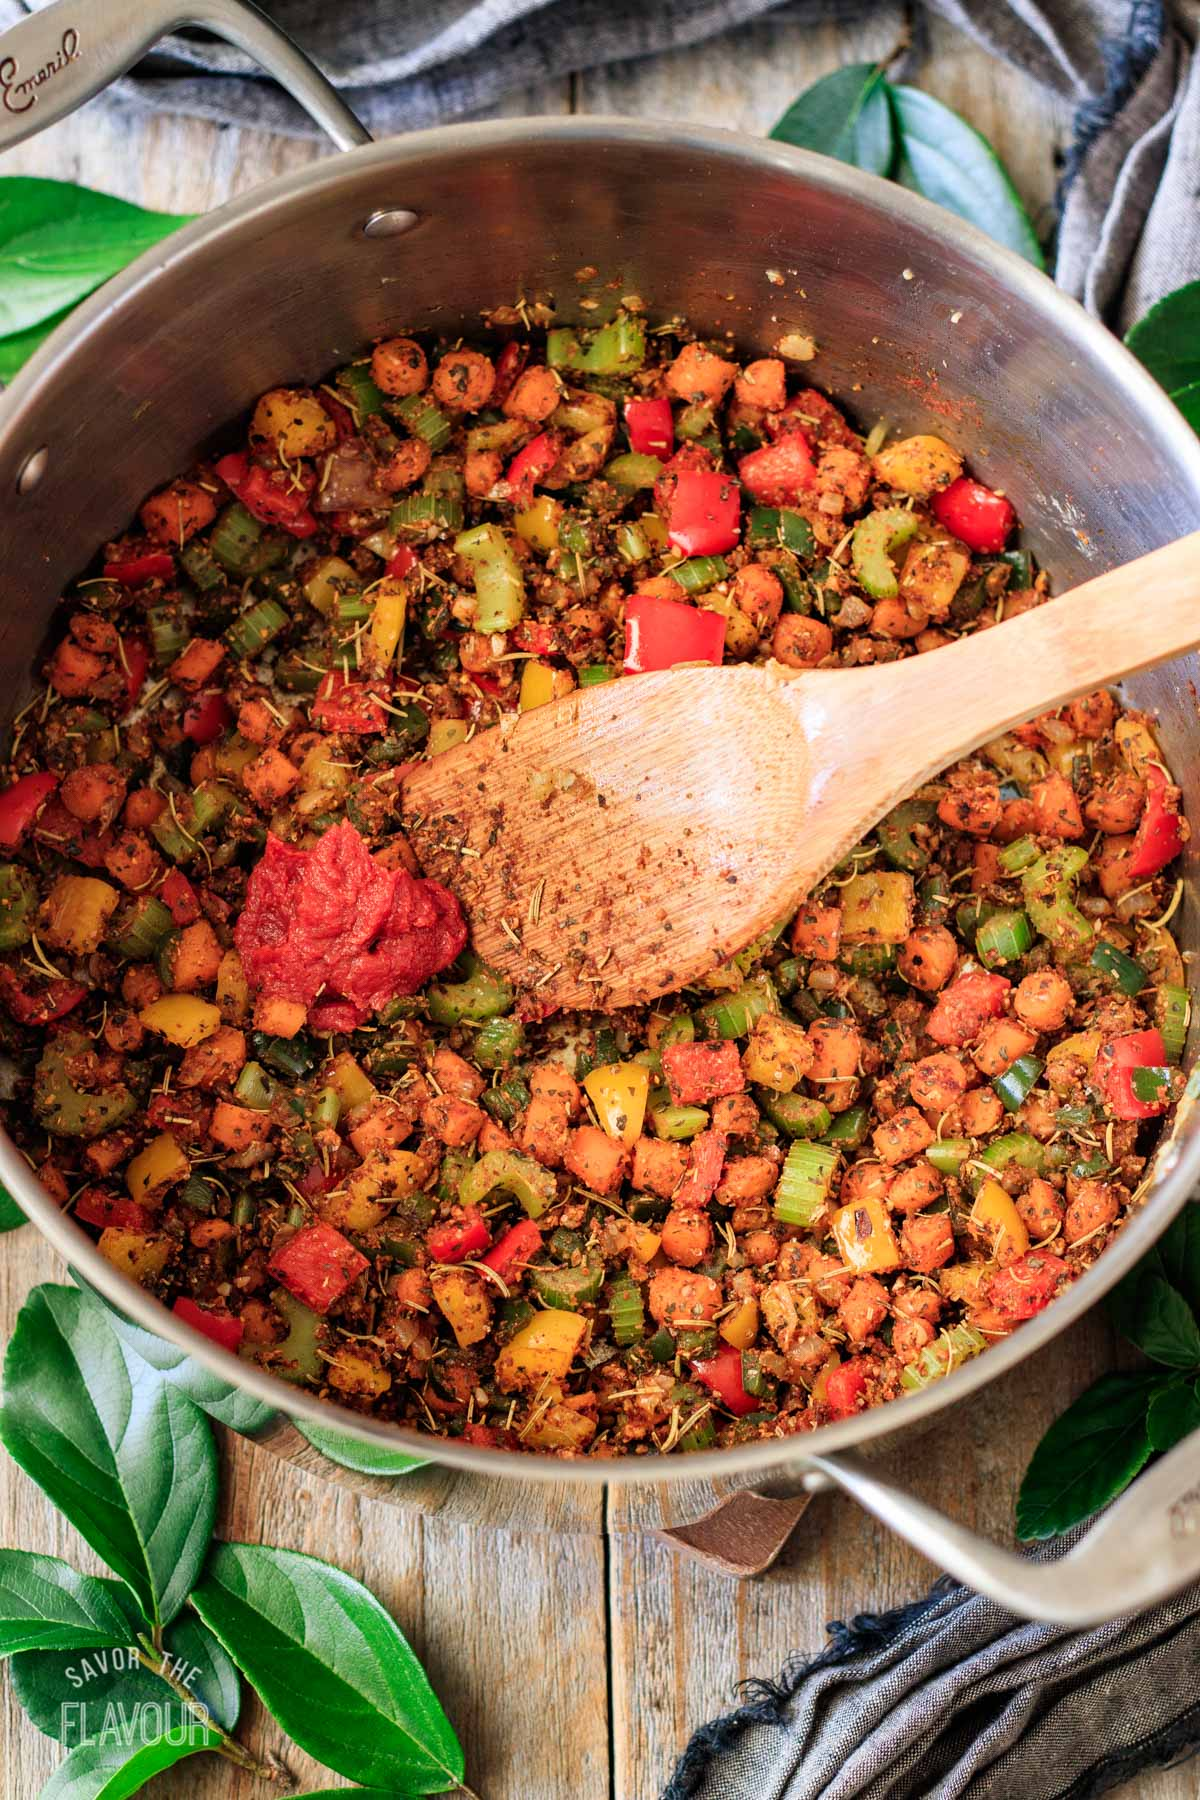 sauteed veggies with spices and tomato paste in a pot